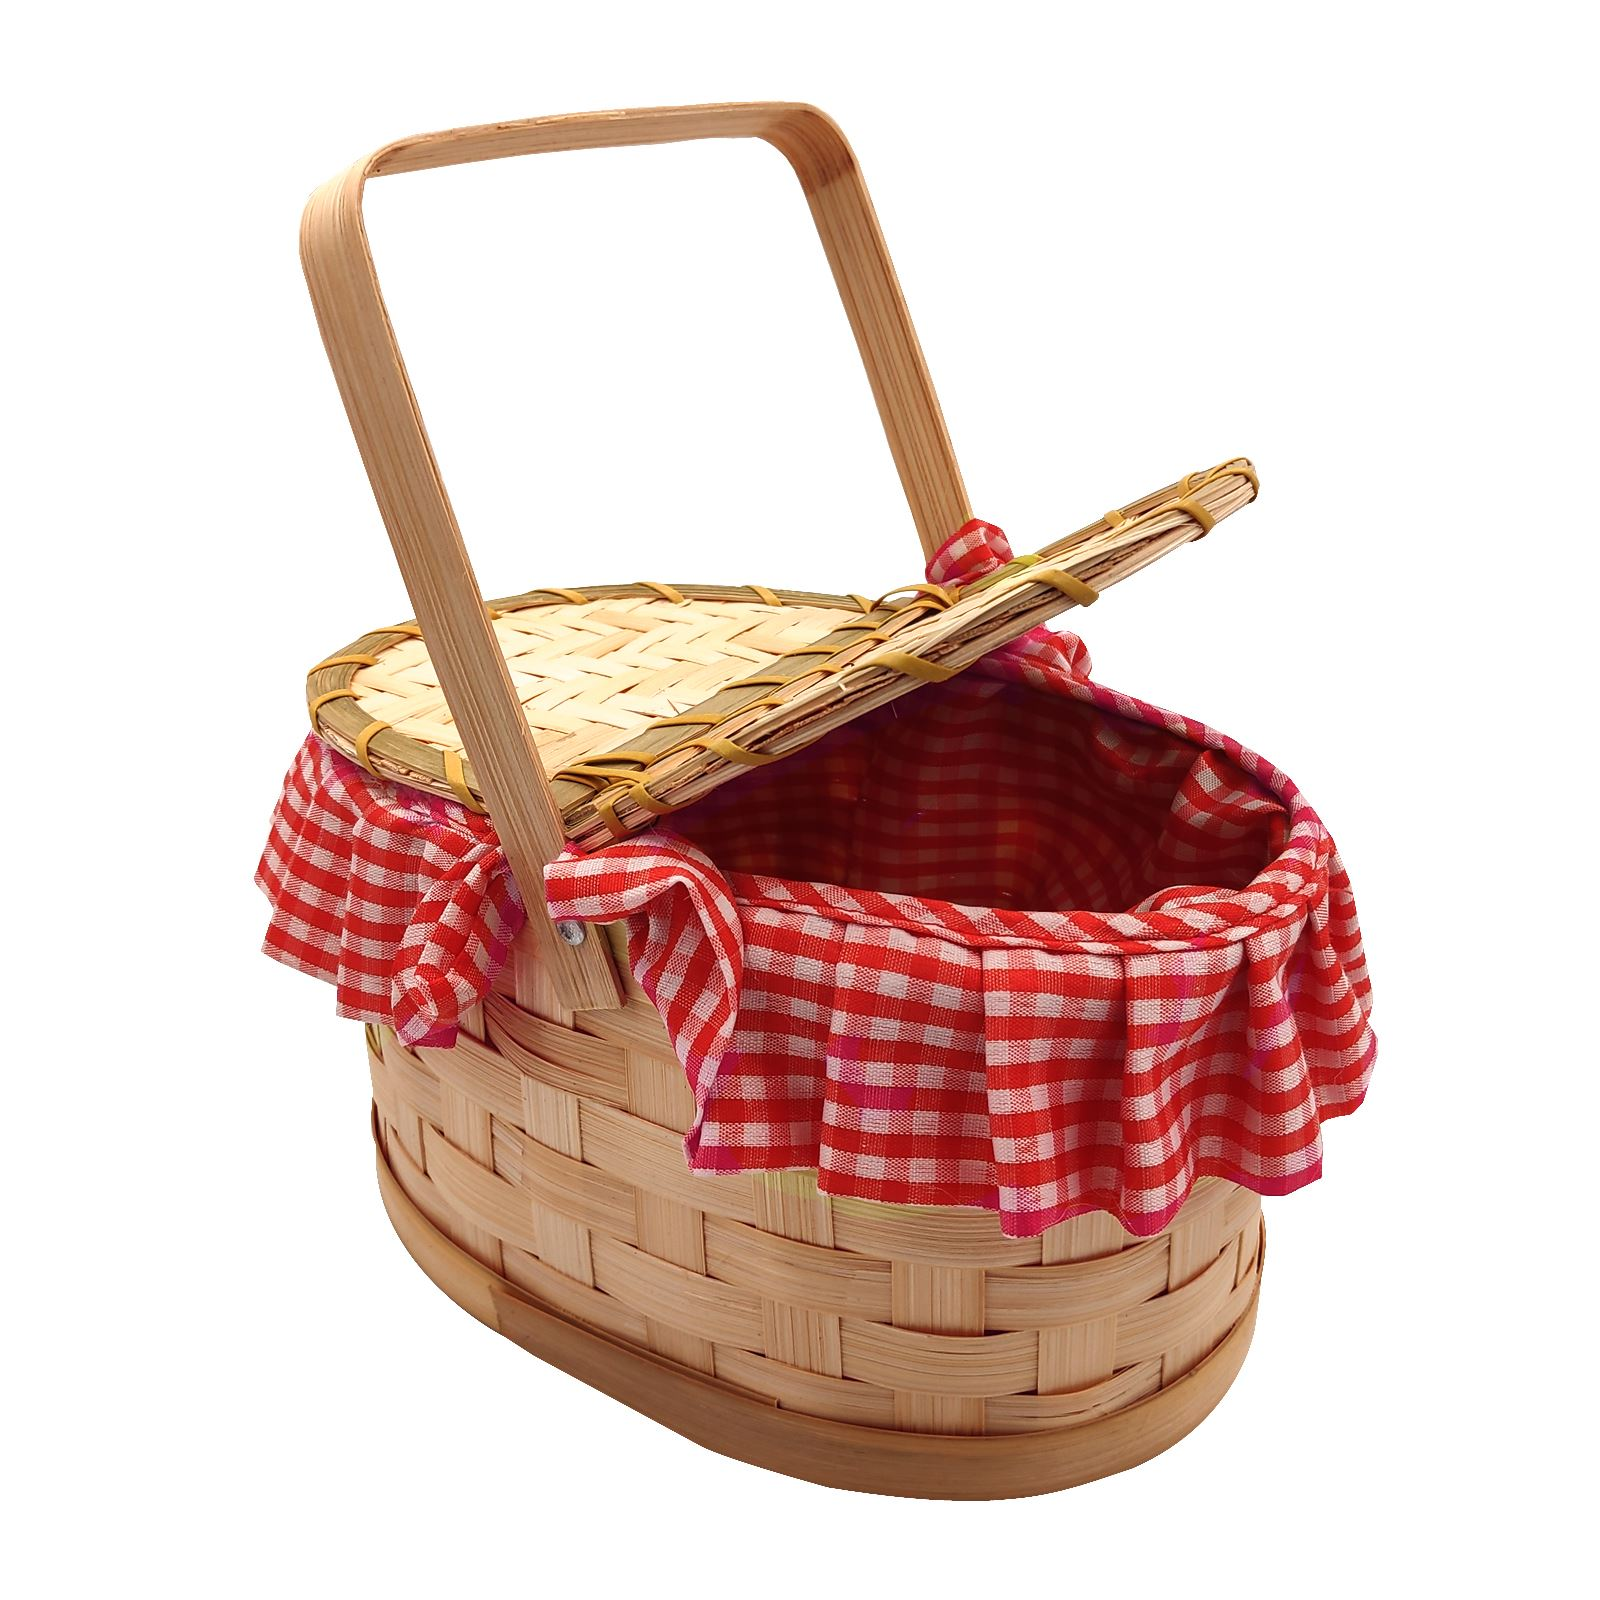 Red Riding Hood Woven Basket Gingham Fairy Tale Fancy Dress Costume Accessory